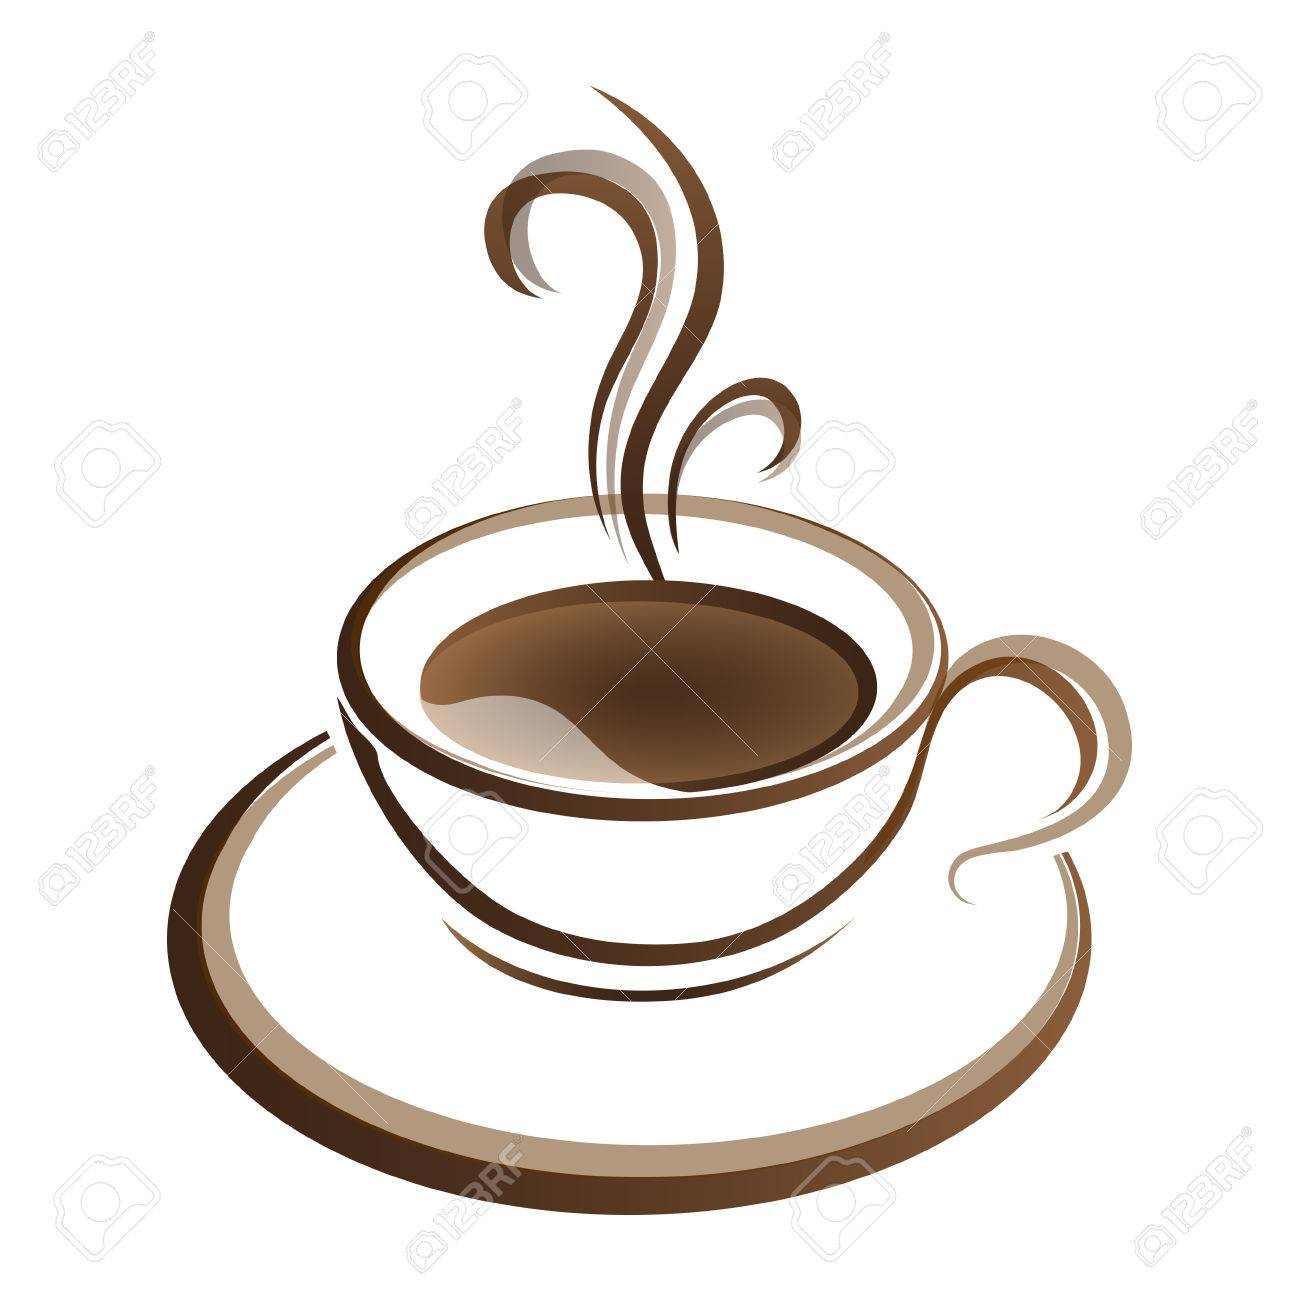 hot coffee cup vector on a white background royalty free cliparts rh 123rf com coffee cup vector top view coffee cup vector design